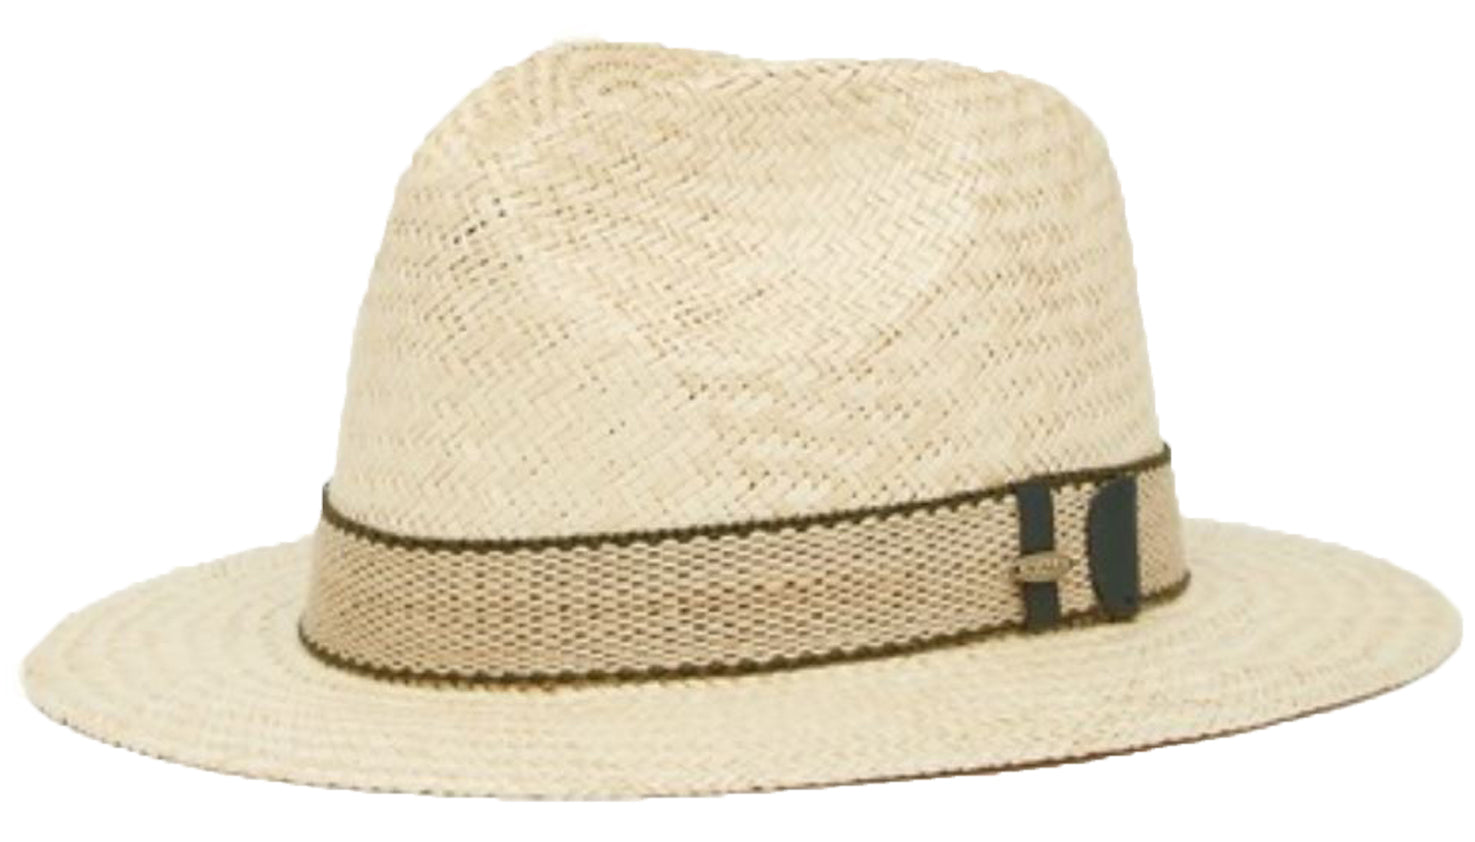 9062519f3 Scala Palm Fiber Safari Fedora Hat (Natural, Large)